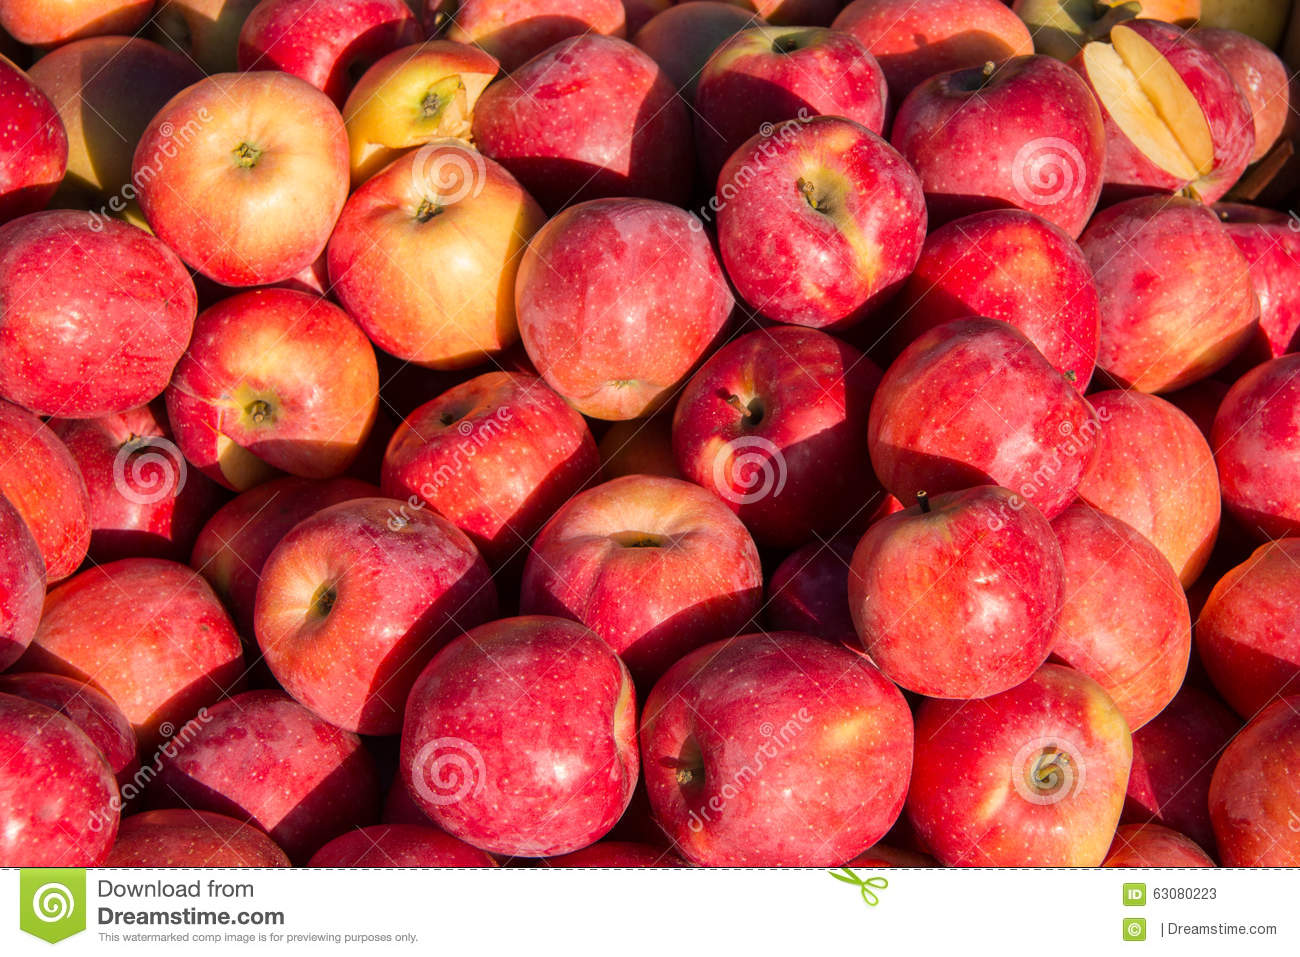 Download Beaucoup de kaki frais image stock. Image du coloré, manger - 63080223